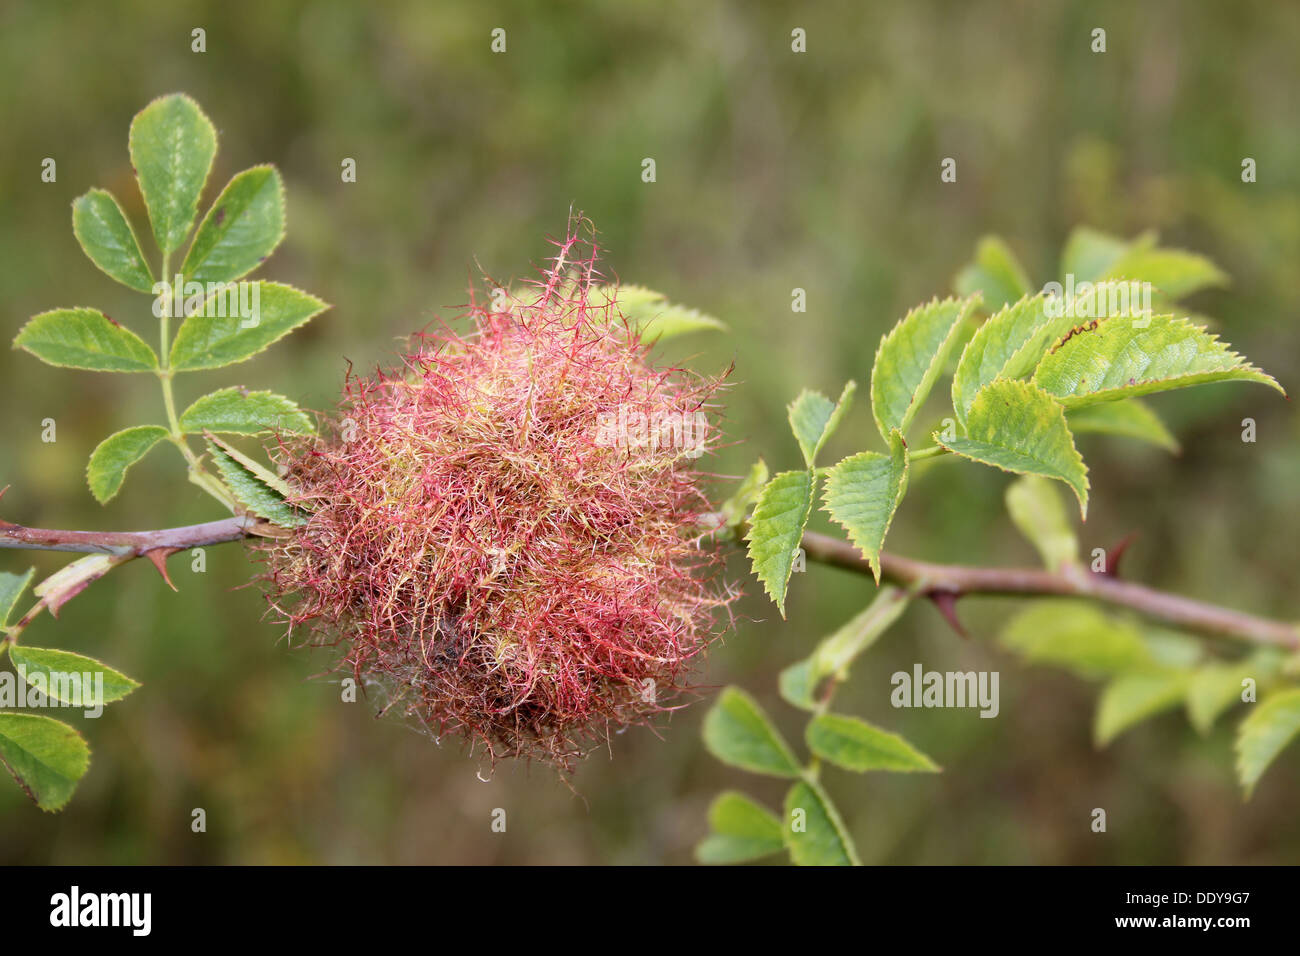 Bedeguar a.k.a. Robin's Pincushion Gall on Dog Rose Rosa canina caused by the Gall Wasp Diplolepis rosae - Stock Image